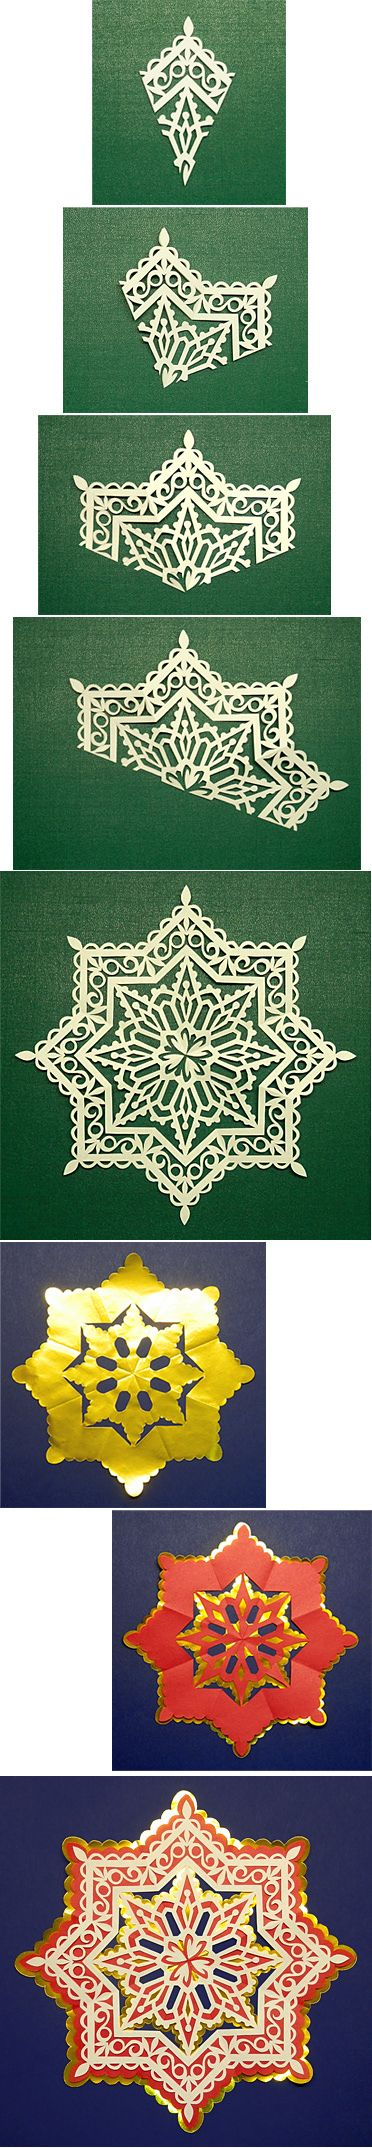 17 best images about scherenschnitte and pattern on for Kirigami paper art